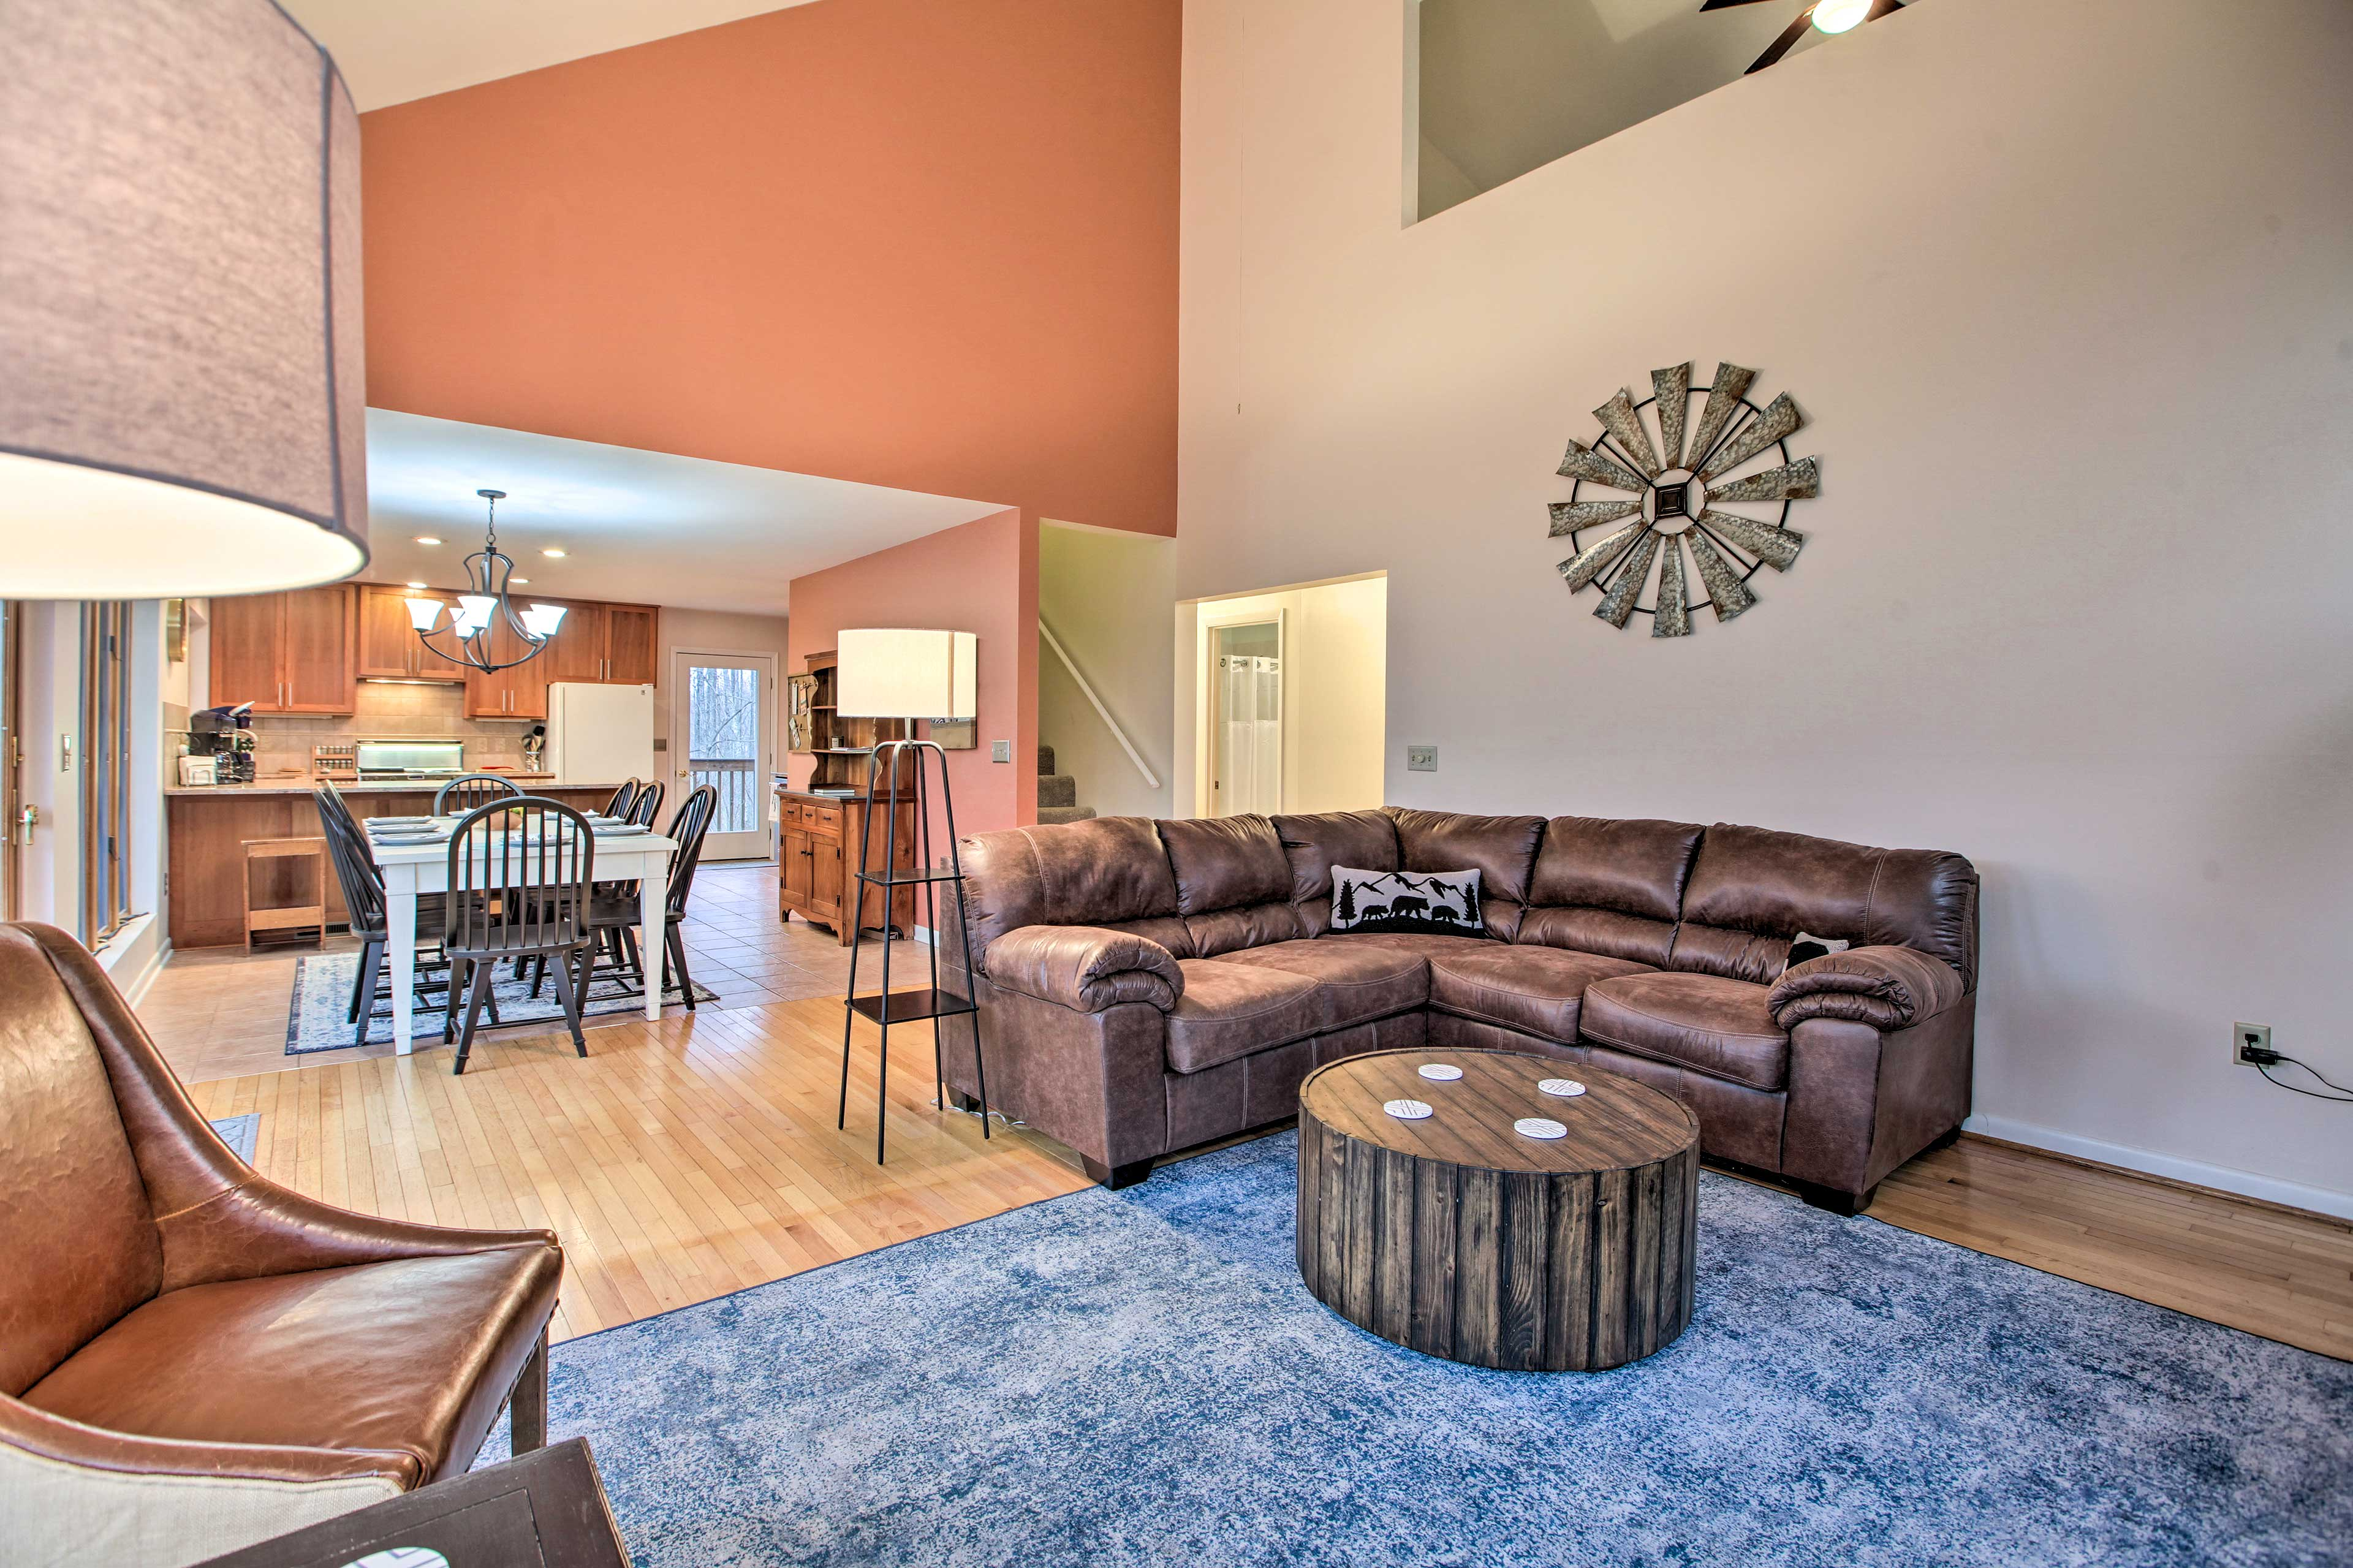 Conversation flows effortlessly through this open living area.